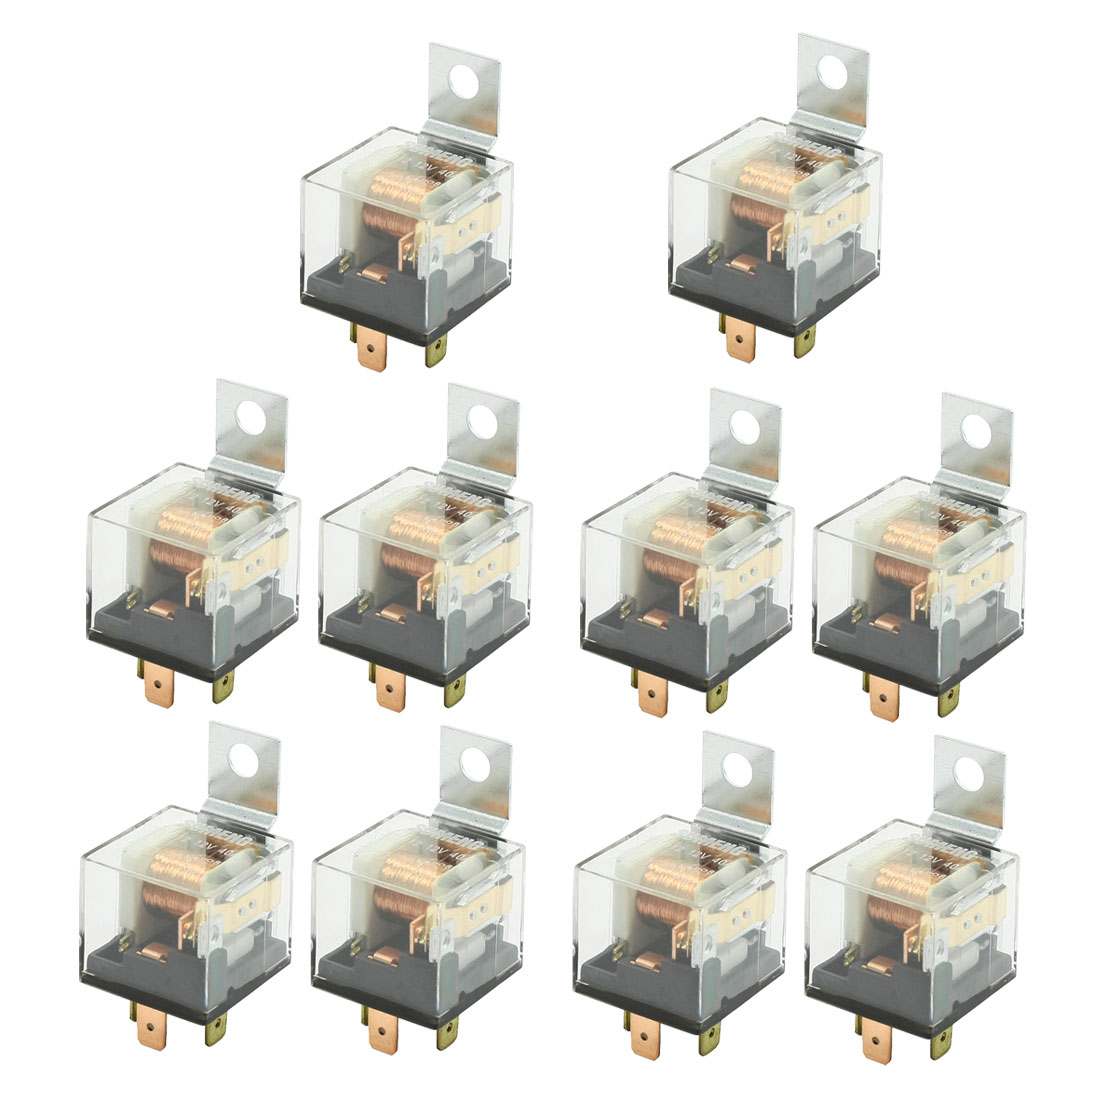 10 Pcs 4 Pin Male Connector Normal Close SPST JD1912 Car Relay DC 12V 40A